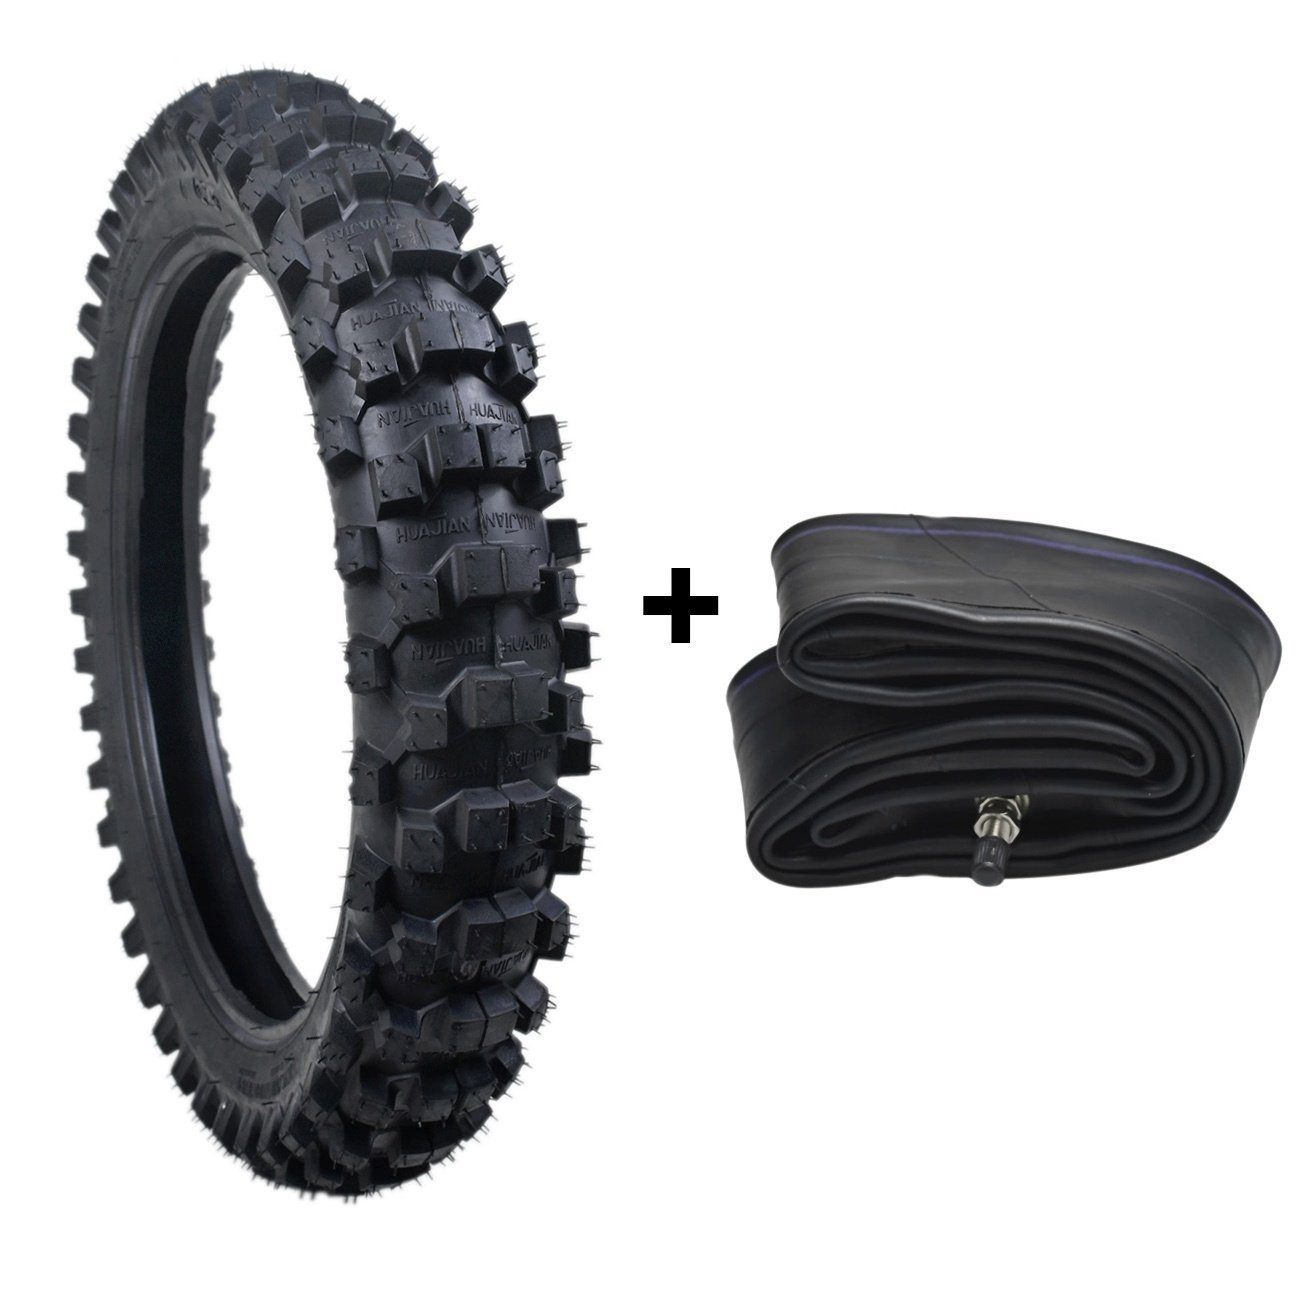 ZXTDR Tire and Inner Tube Set 90/100-16 Off Road Dirt Bike Motorcycle Replacement parts